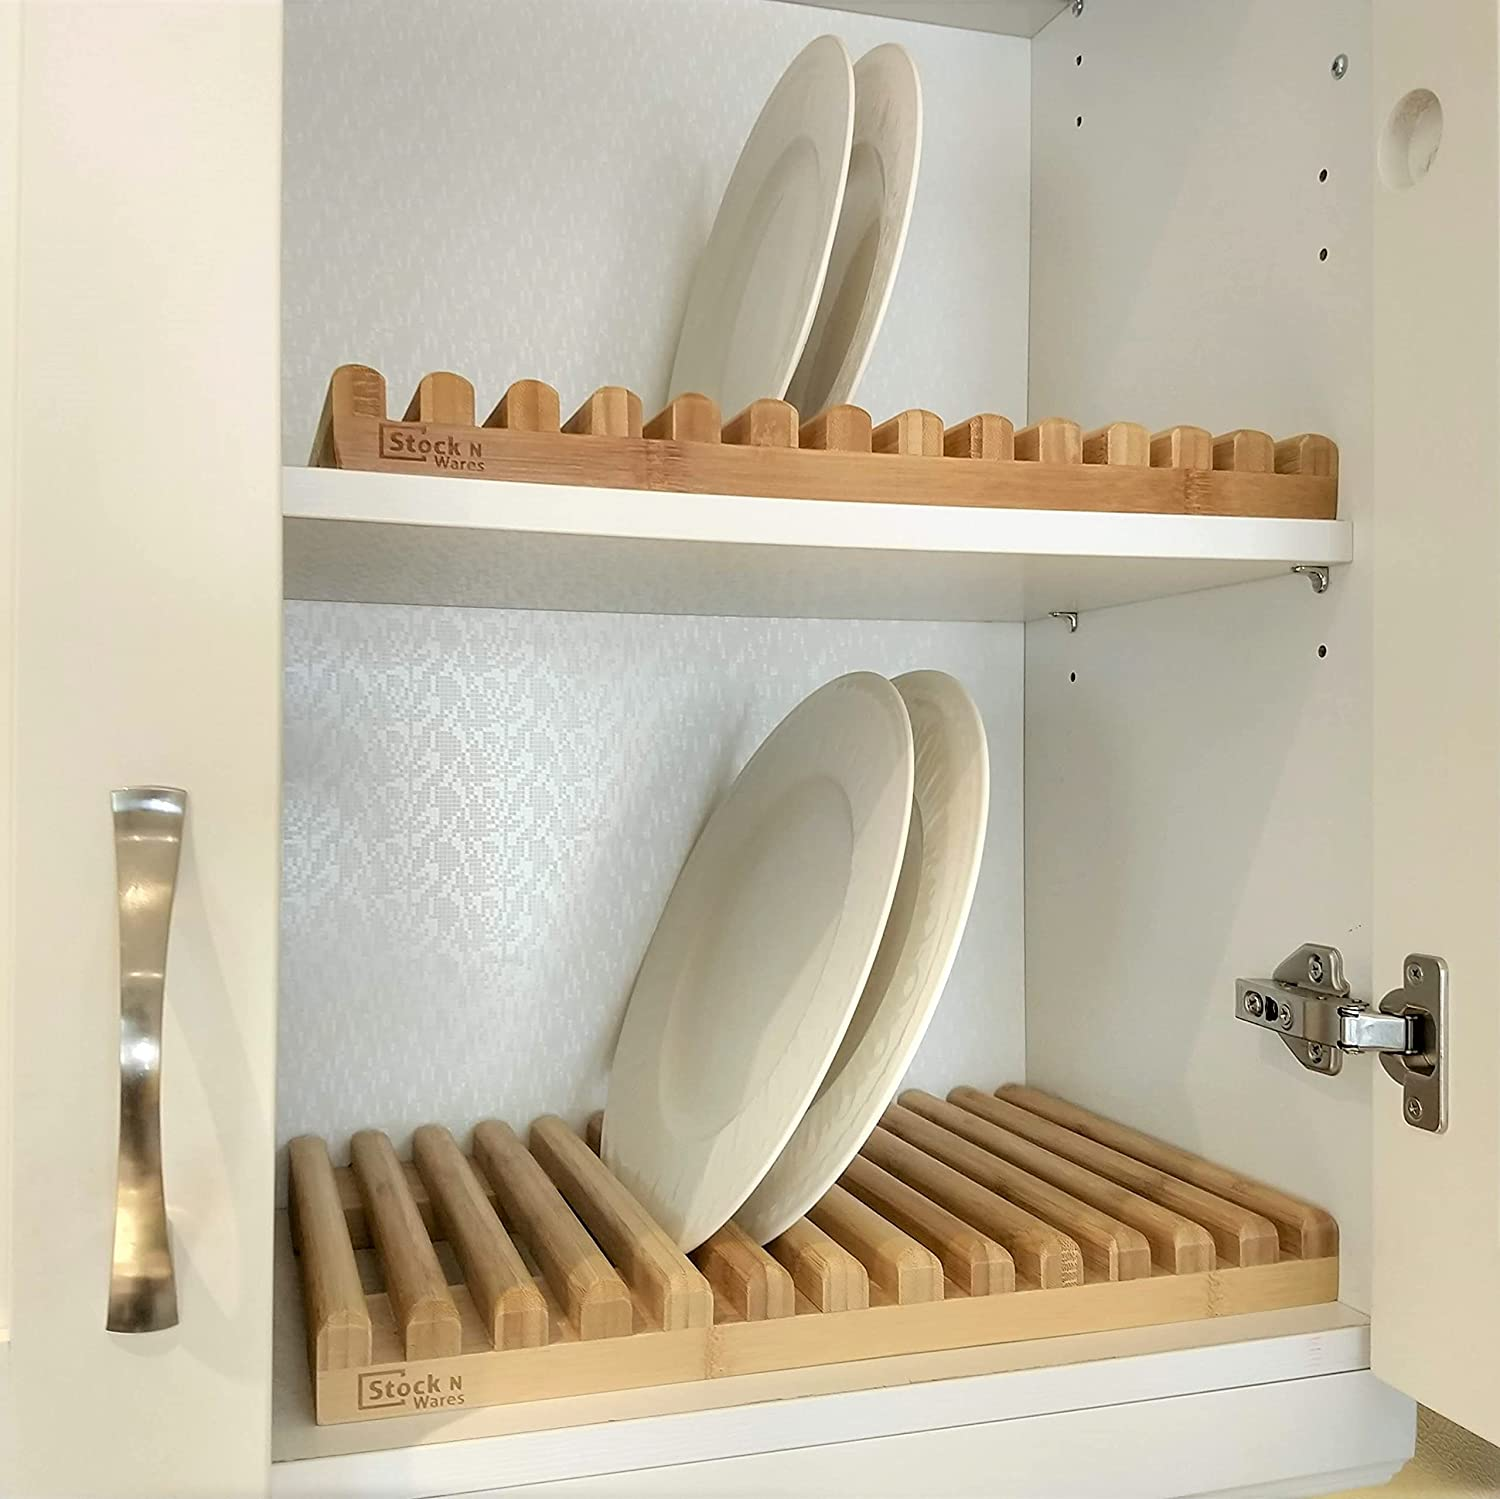 Stock N Wares Bamboo National products Dish Rack Width Holder 0.44